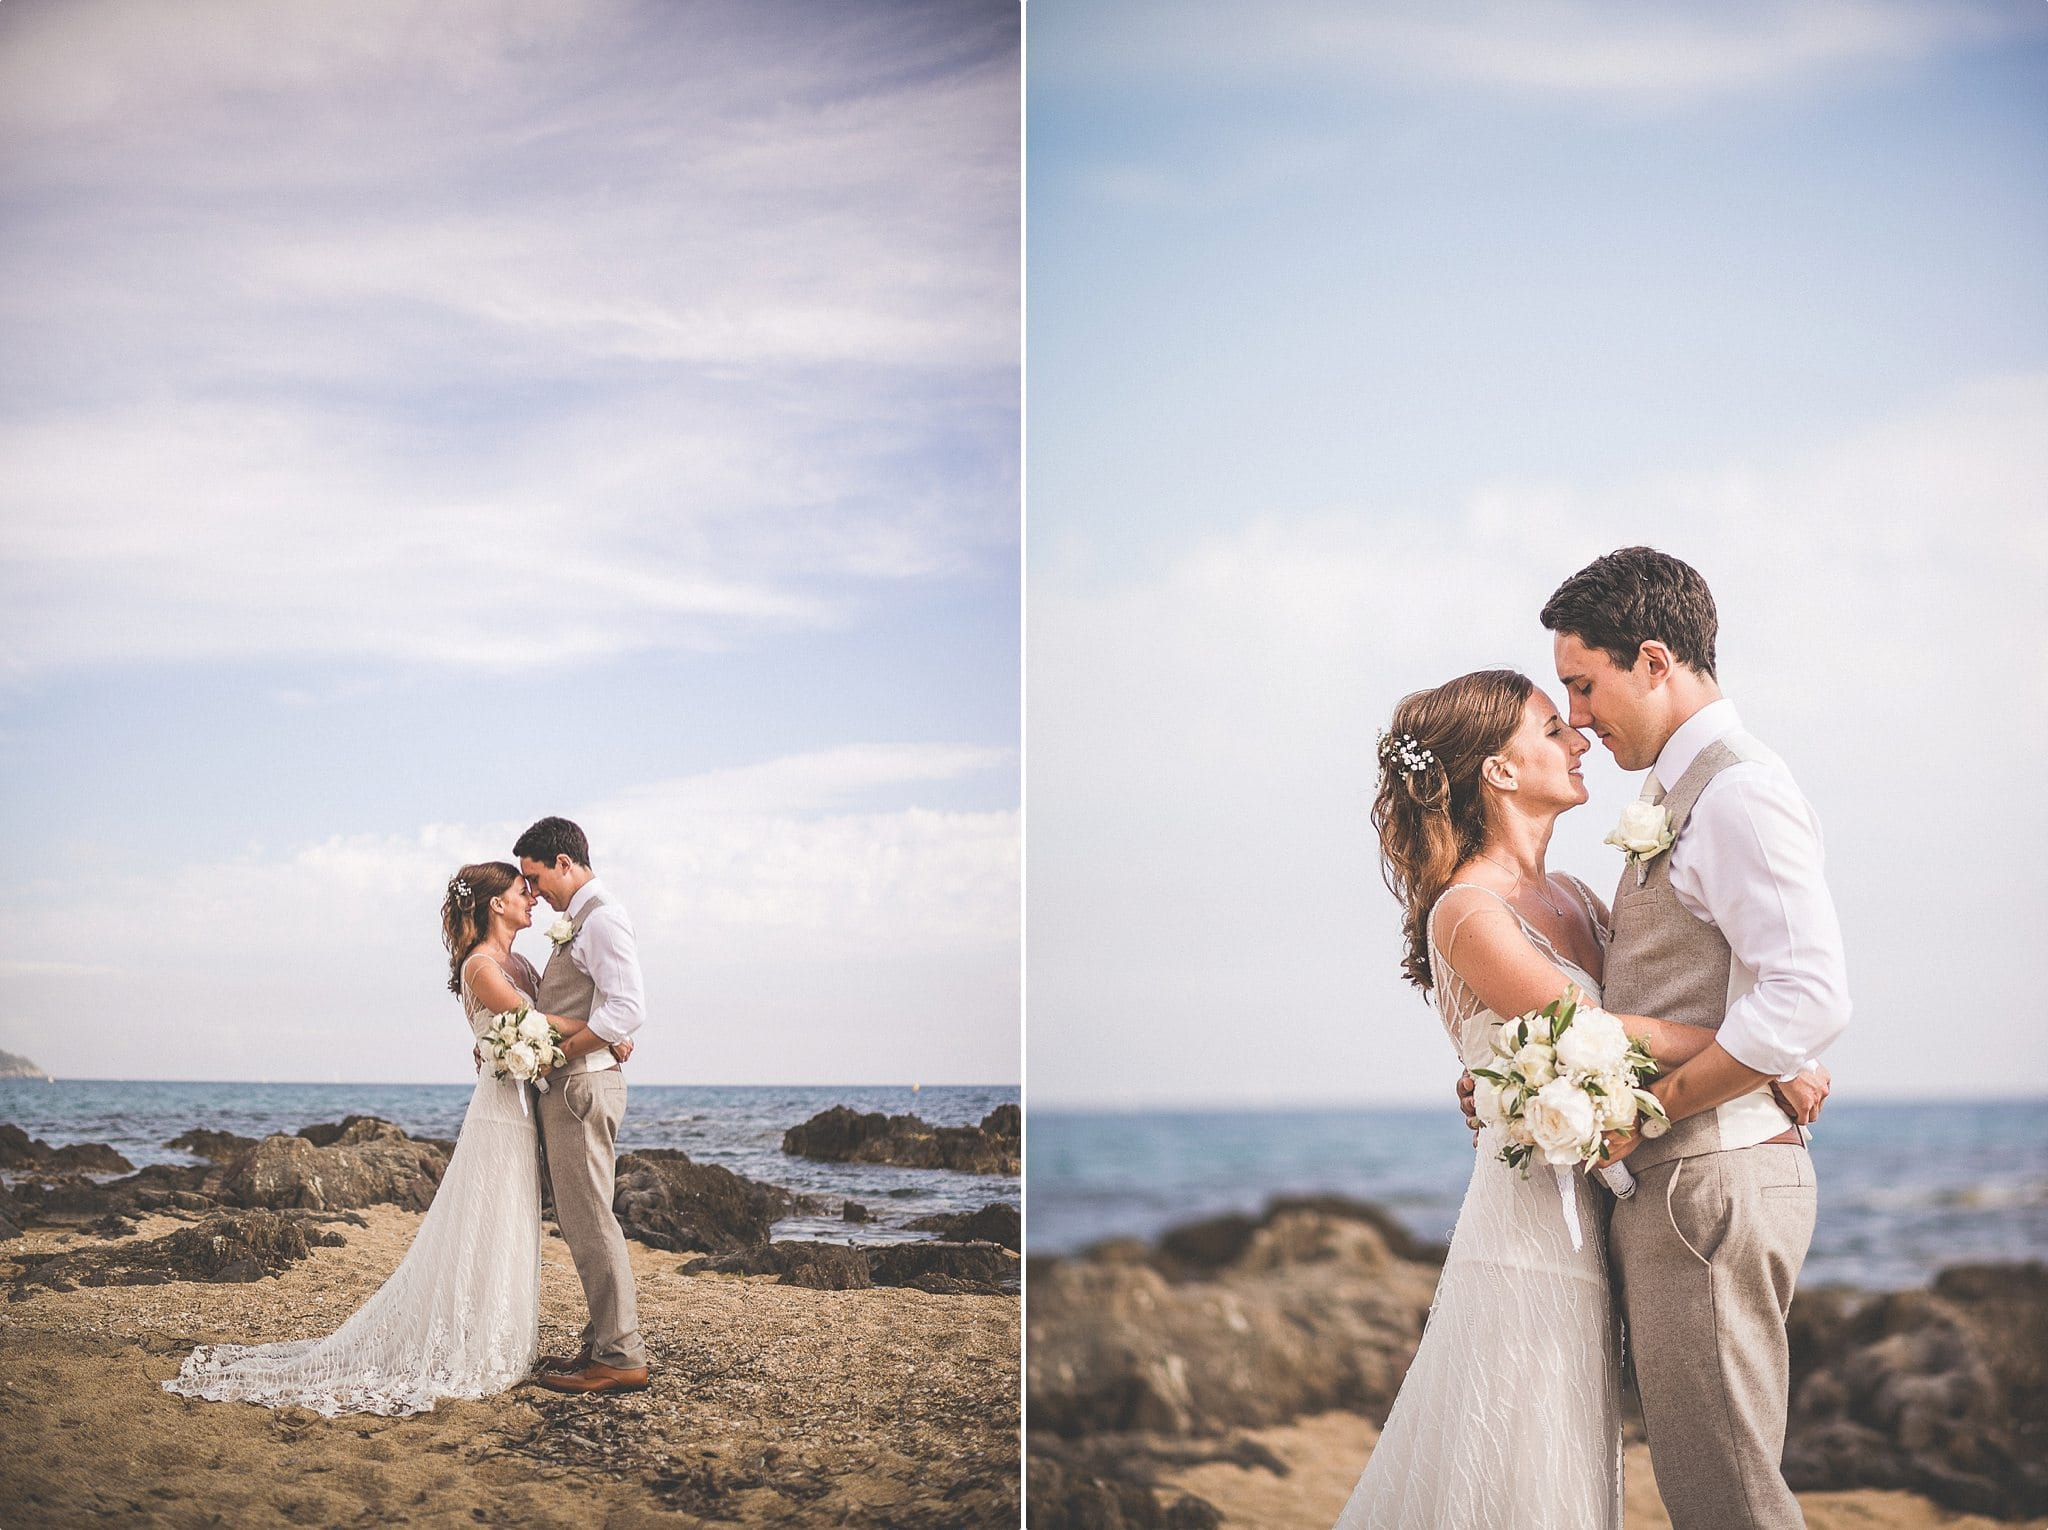 Are You Looking To Book Your Gorgeous Destination Wedding Photography Ve Come The Right Place